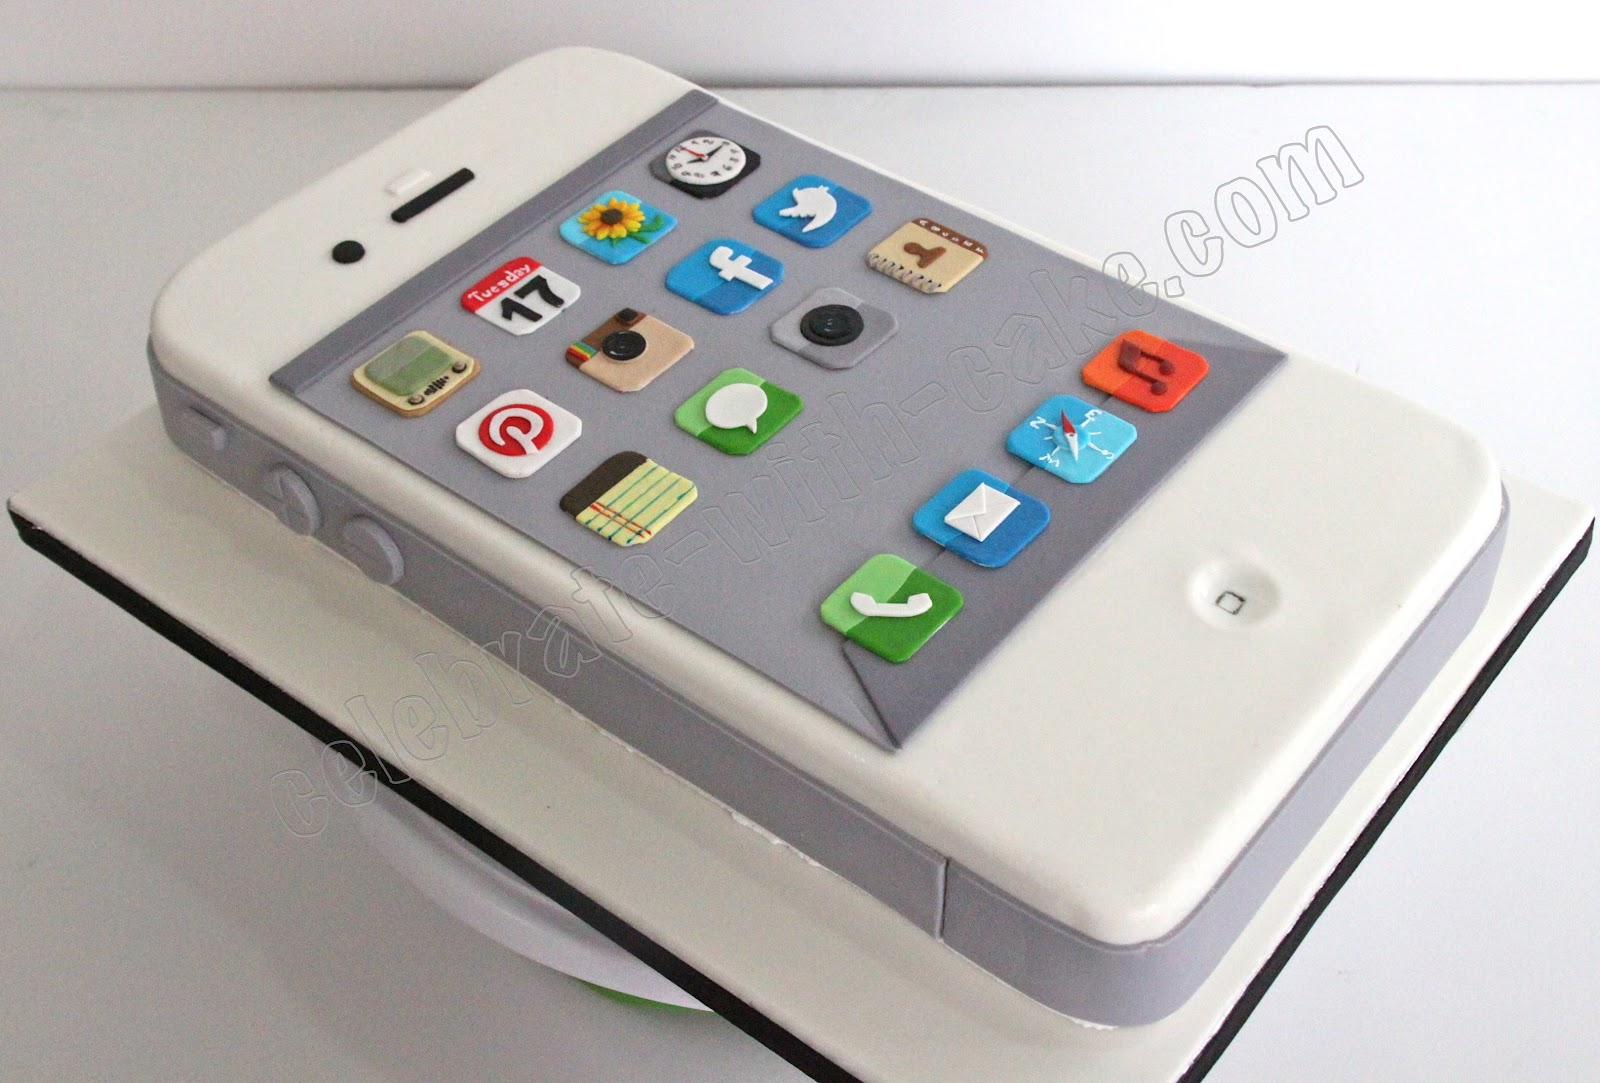 Edible Cake Images Iphone : Celebrate with Cake!: iPhone Cake